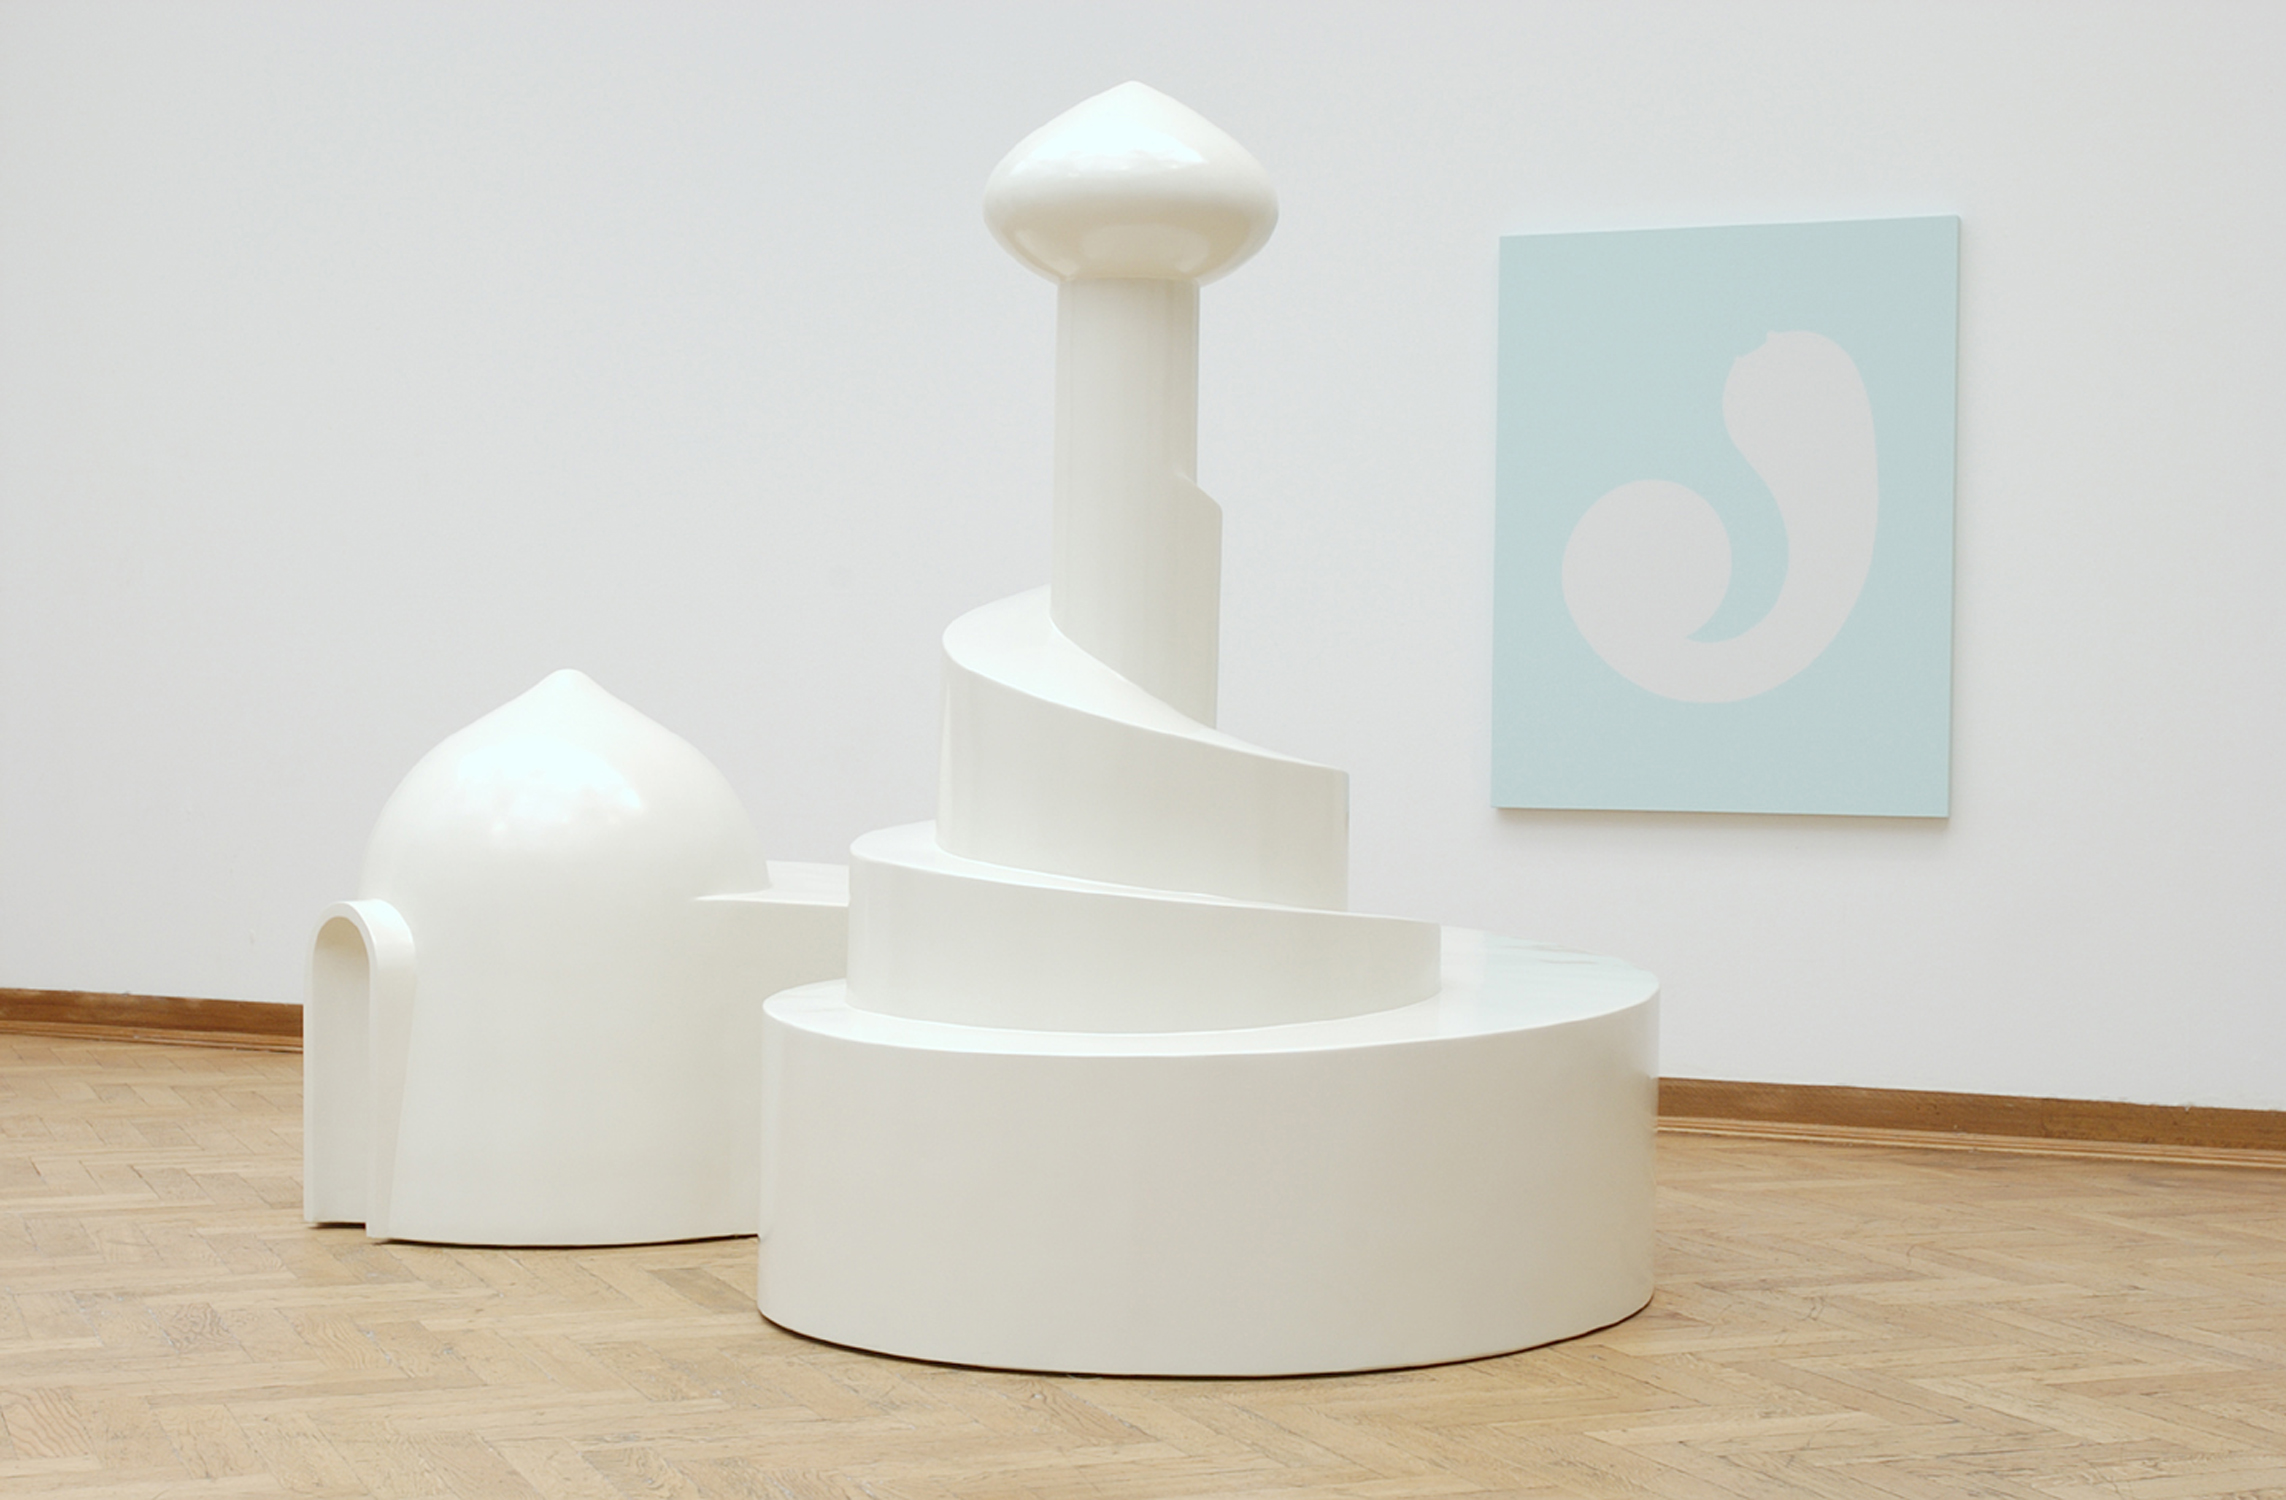 Untitled (Industrial Harem), 2003. Installation view, Transferts, Palais des Beaux-Arts, Brussels, Belgium